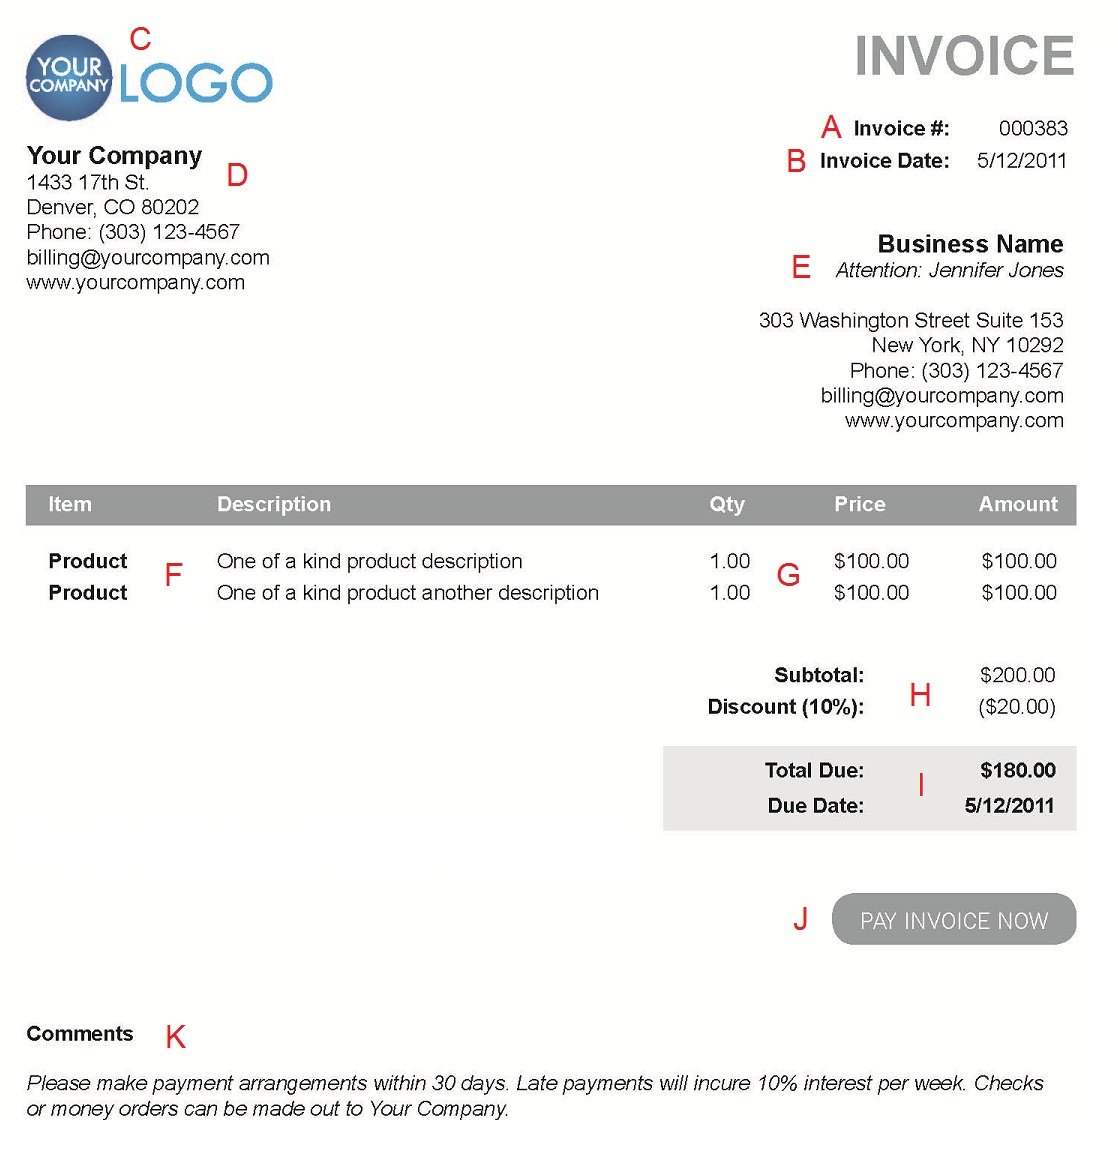 Pxworkoutfreeus  Unique The  Different Sections Of An Electronic Payment Invoice With Inspiring A  With Adorable Car Repair Invoice Also Blank Printable Invoice In Addition Template Invoice Word And Invoice Templets As Well As Invoice Vs Quote Additionally How To Import Invoices Into Quickbooks From Paysimplecom With Pxworkoutfreeus  Inspiring The  Different Sections Of An Electronic Payment Invoice With Adorable A  And Unique Car Repair Invoice Also Blank Printable Invoice In Addition Template Invoice Word From Paysimplecom